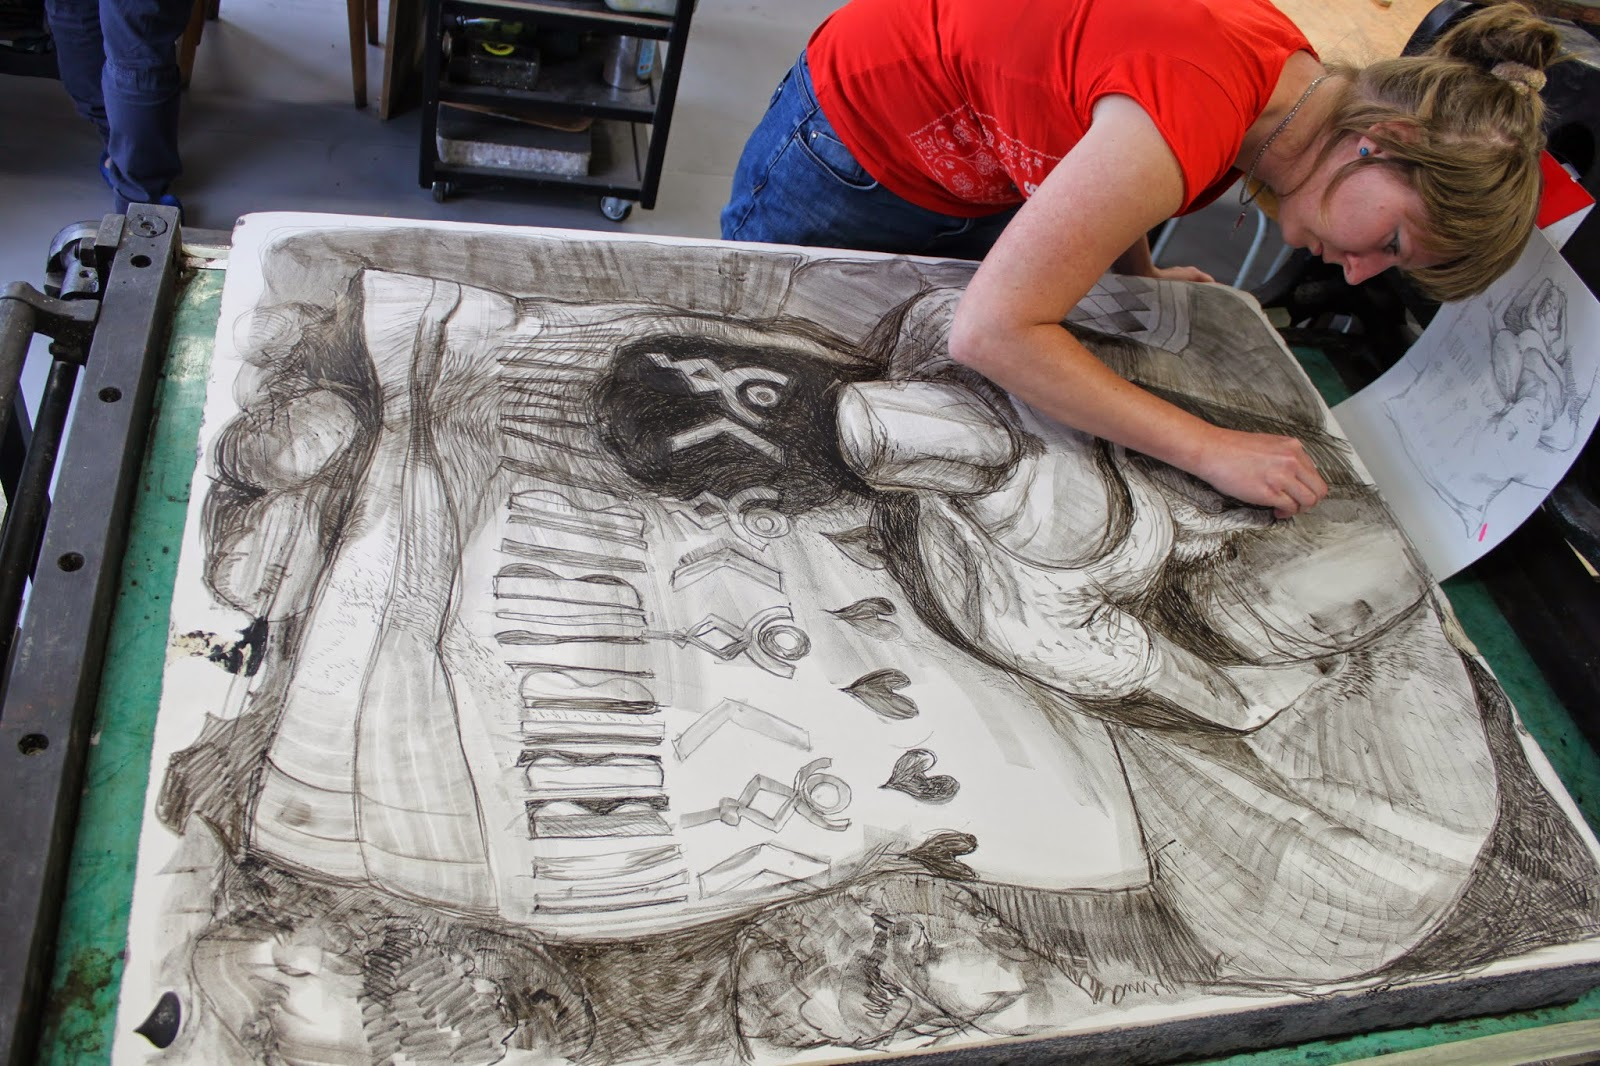 ArtCamp 2014, Litografie, Lithography